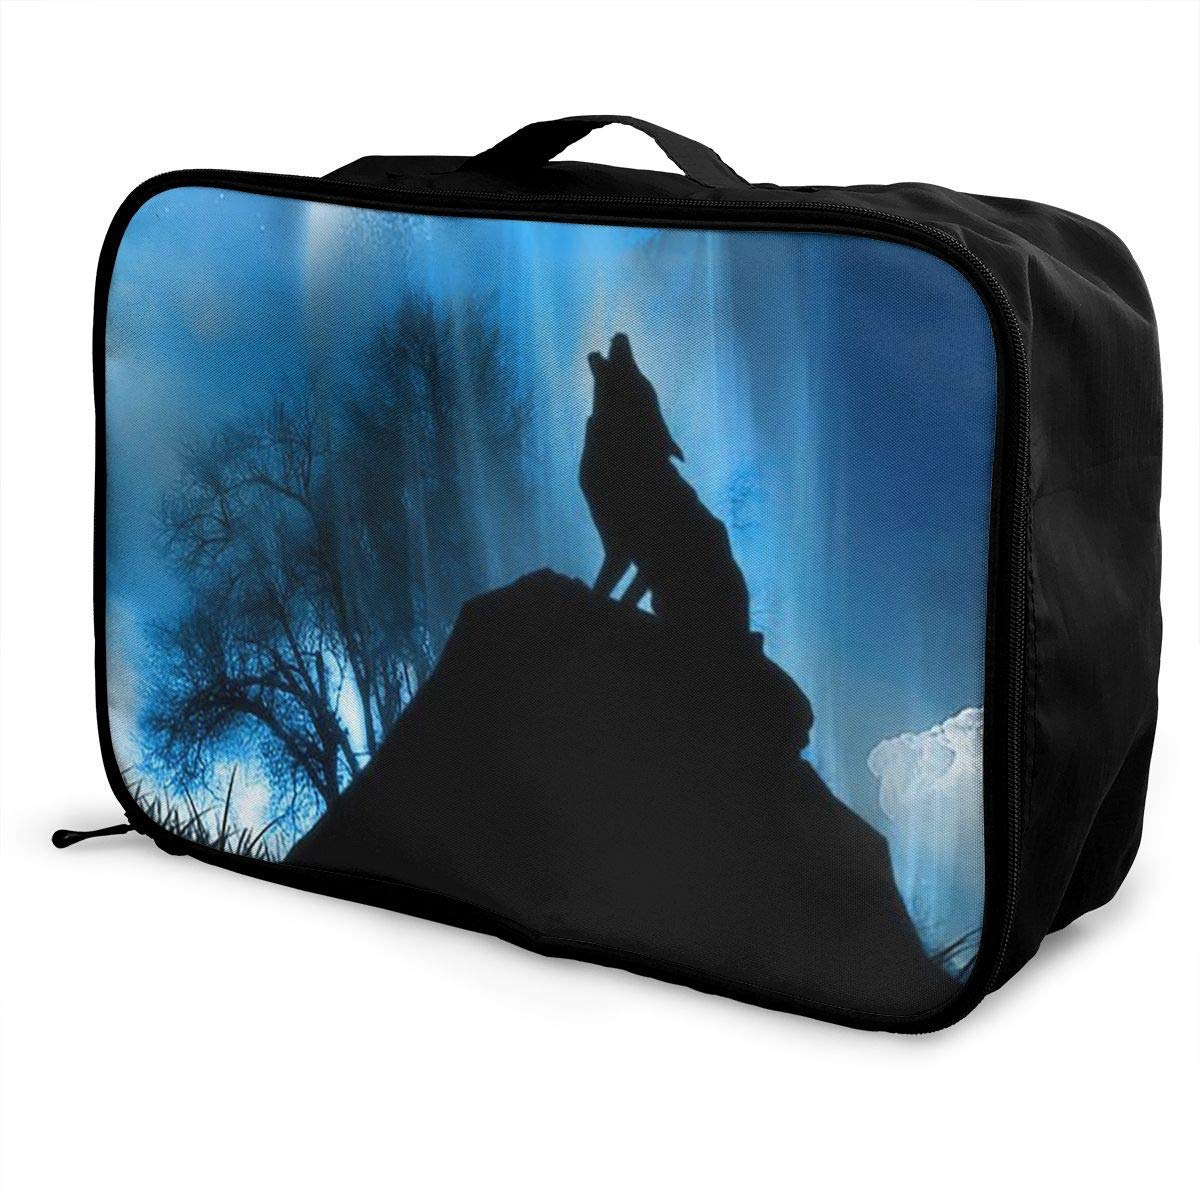 Portable Luggage Duffel Bag Earth Wolf Travel Bags Carry-on In Trolley Handle